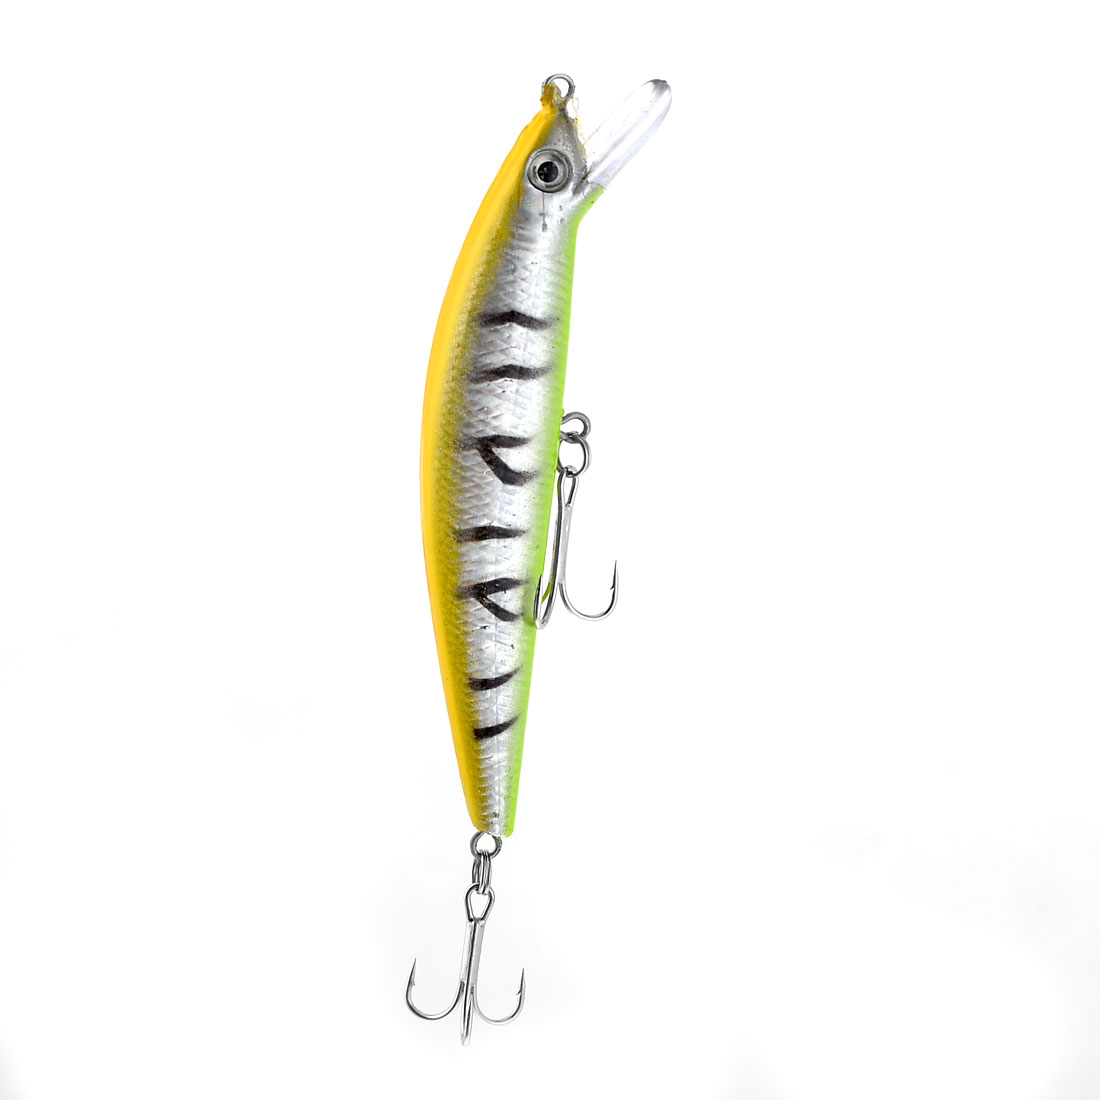 Angler Fishman Yellow Fish Fishing Lure Baiting Hook 12cm Length